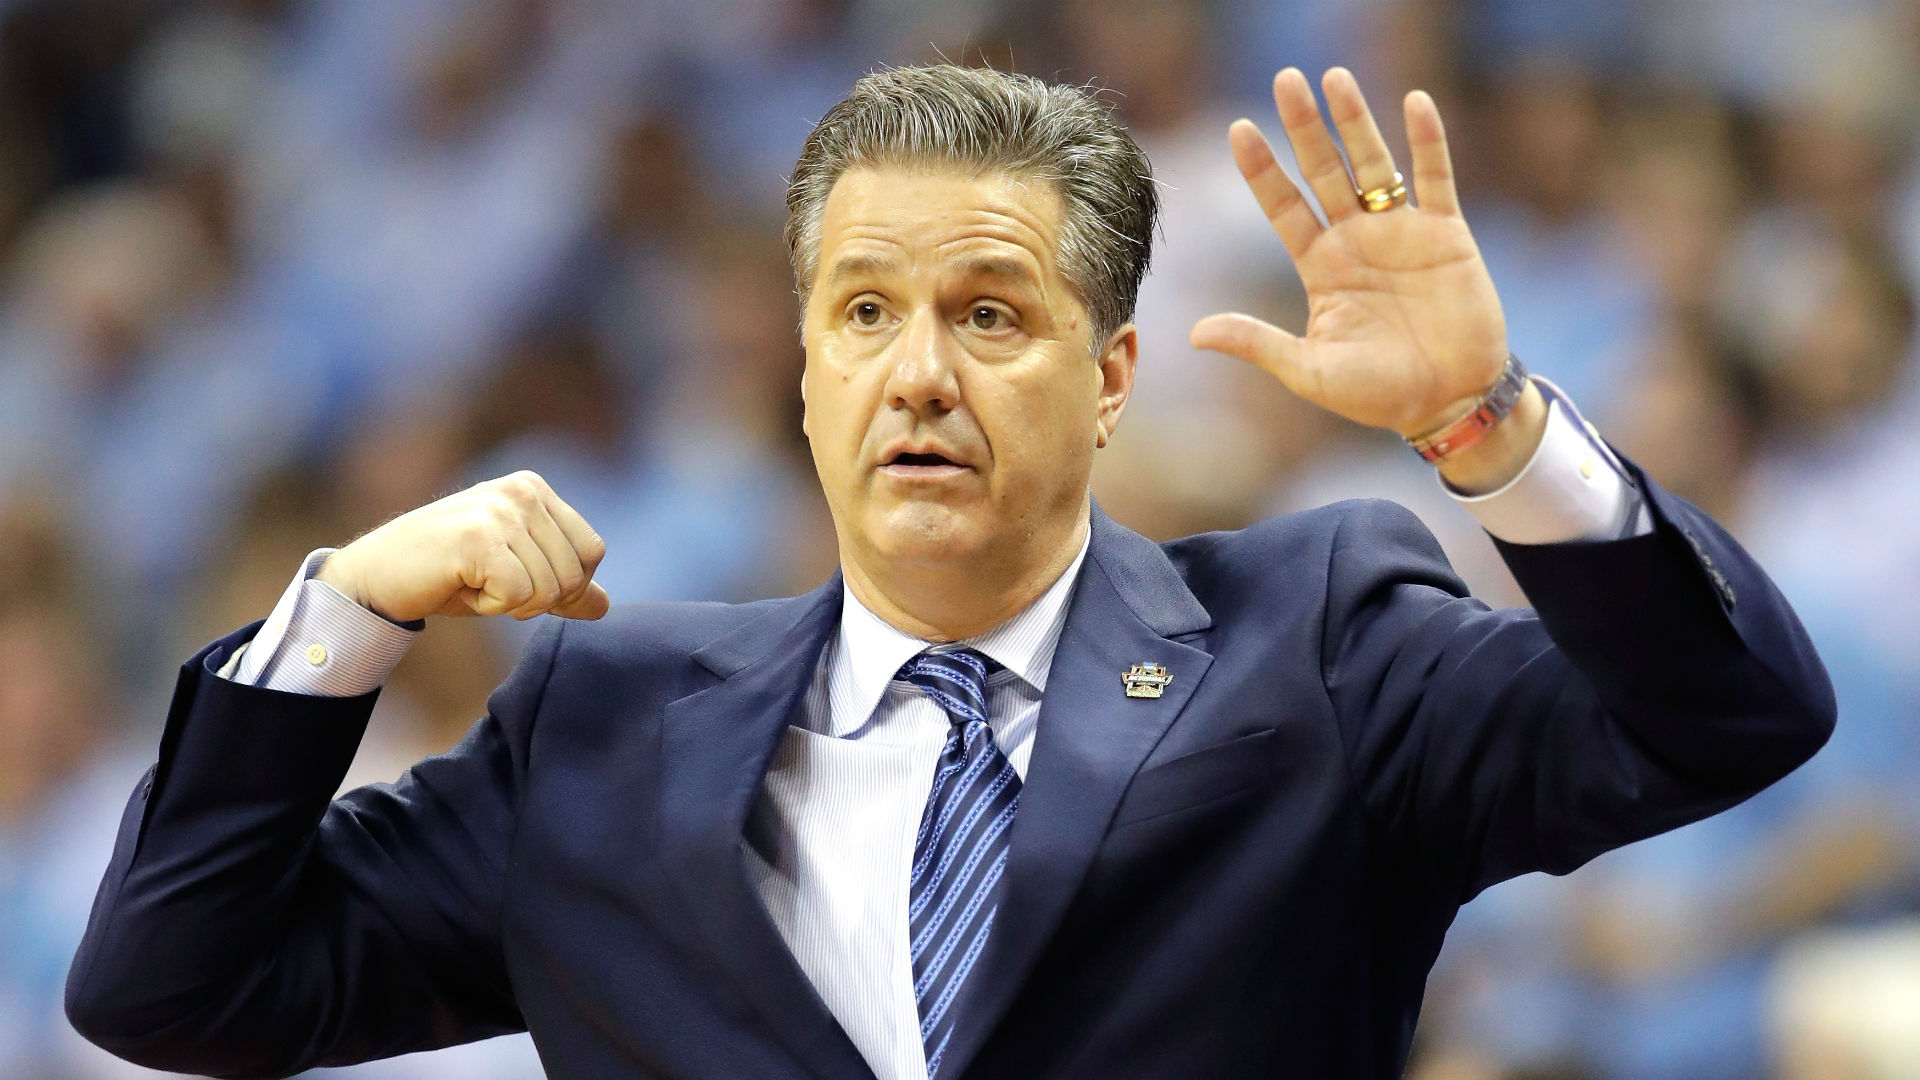 John Calipari's U.S. squad survives challenge from Germany in U19 World Cup